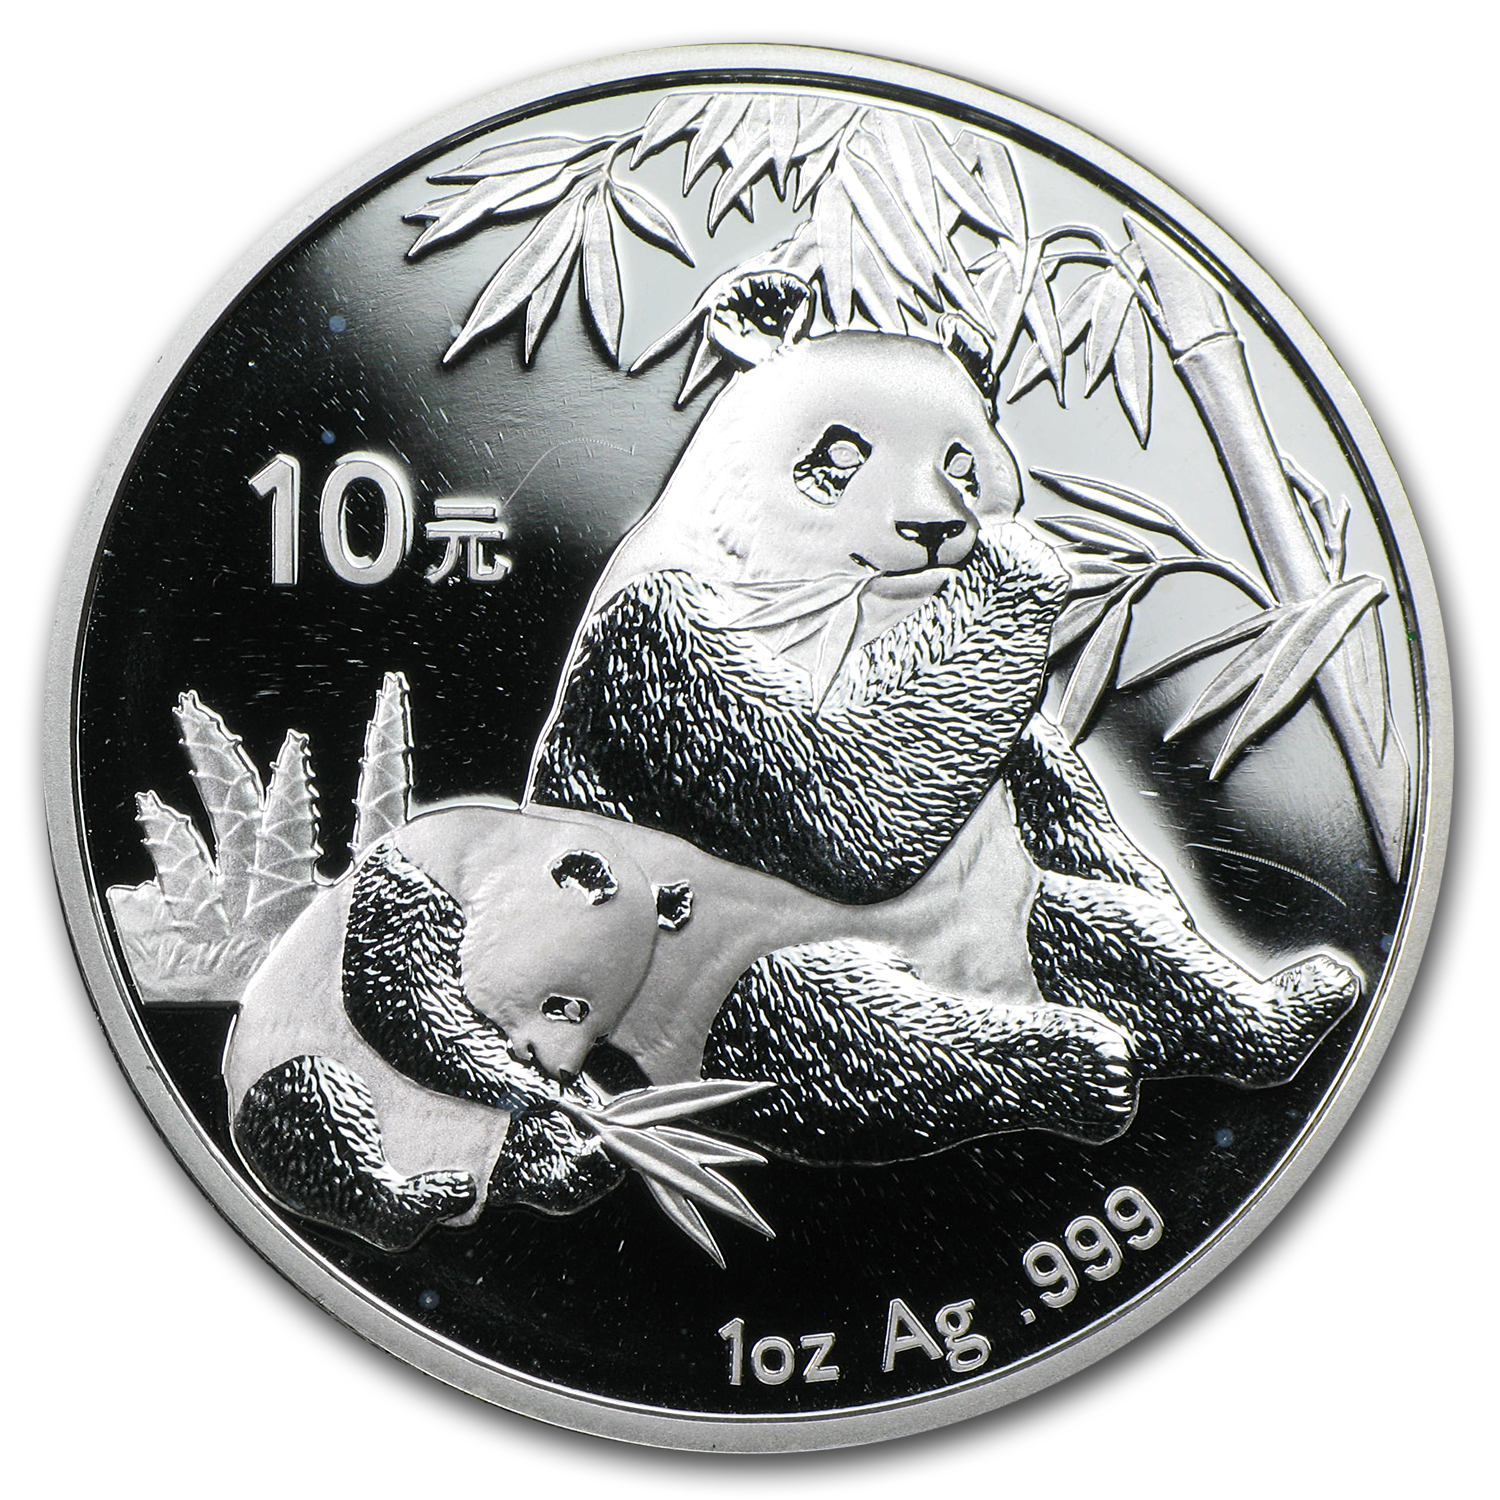 2007 Silver Chinese Panda 1 oz - Light Abrasions